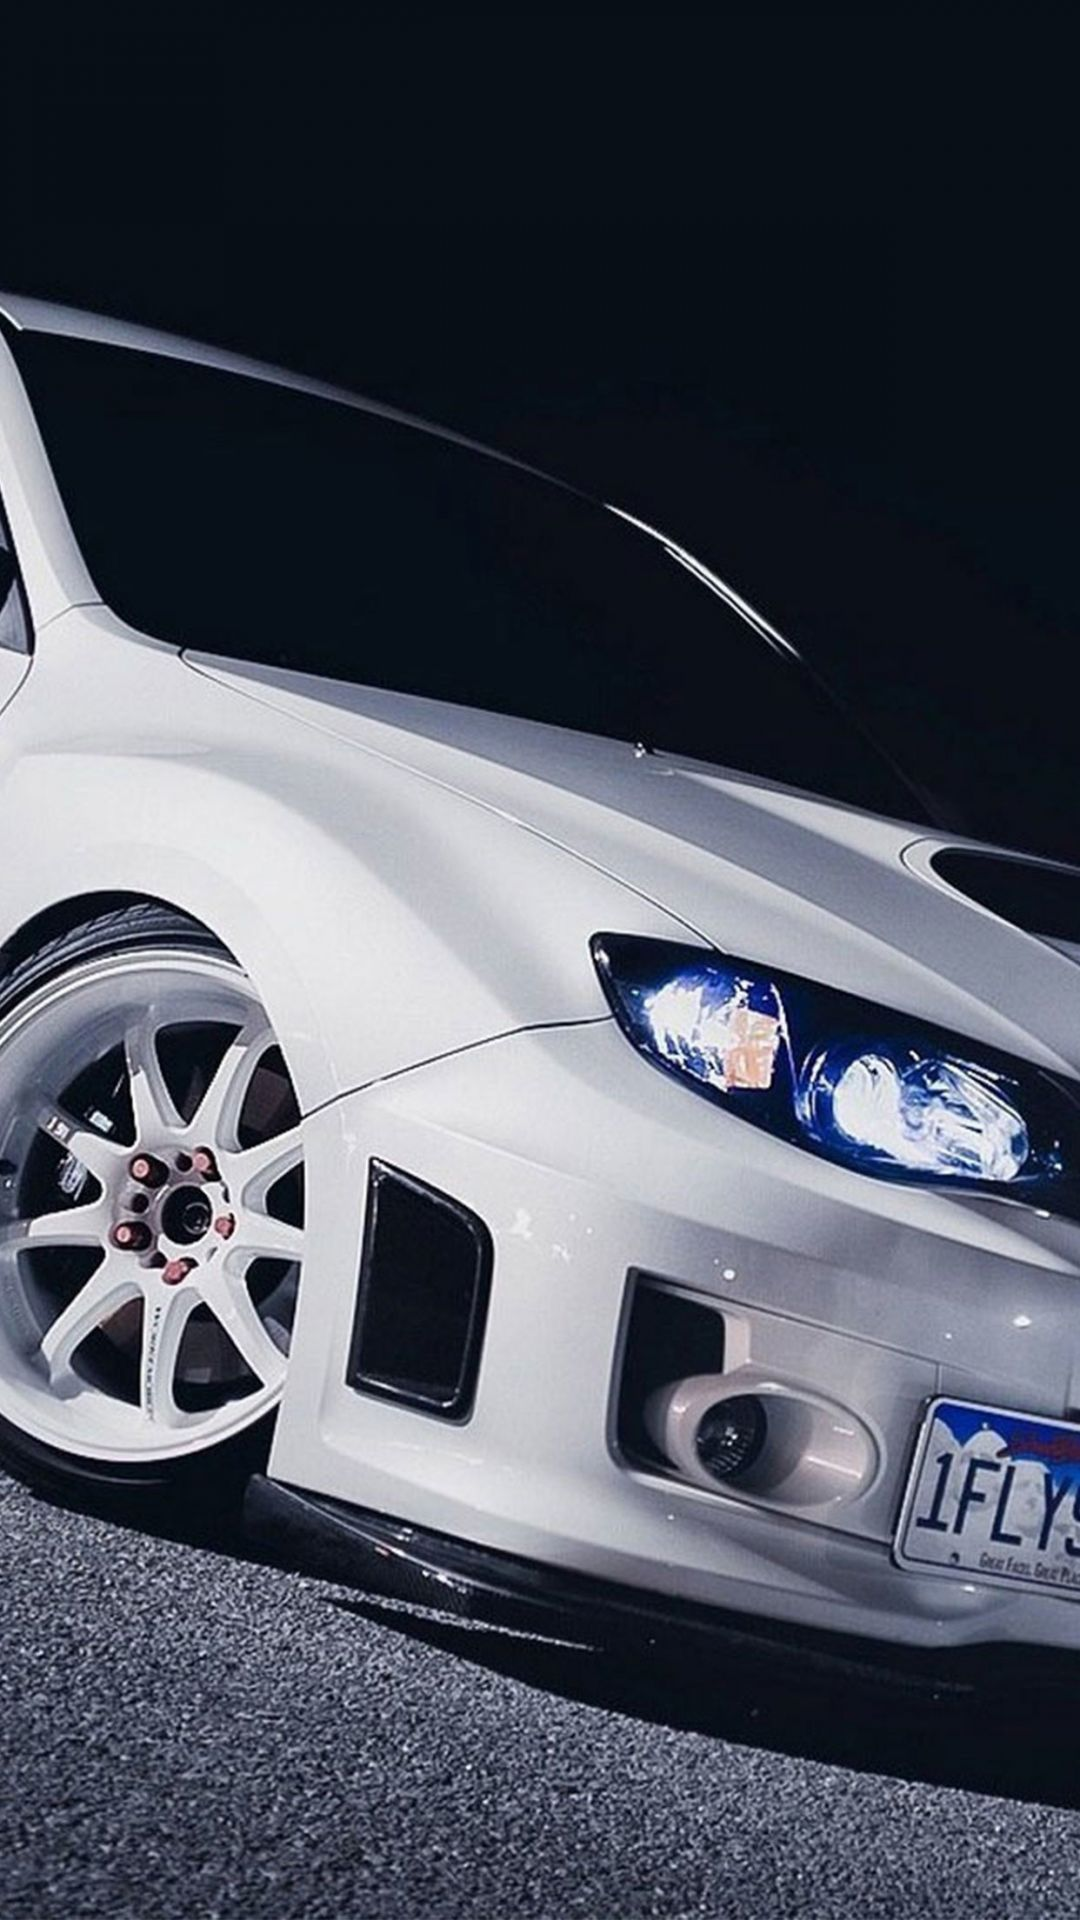 130 Jdm Iphone Android Iphone Desktop Hd Backgrounds Wallpapers 1080p 4k 1242x2208 2020